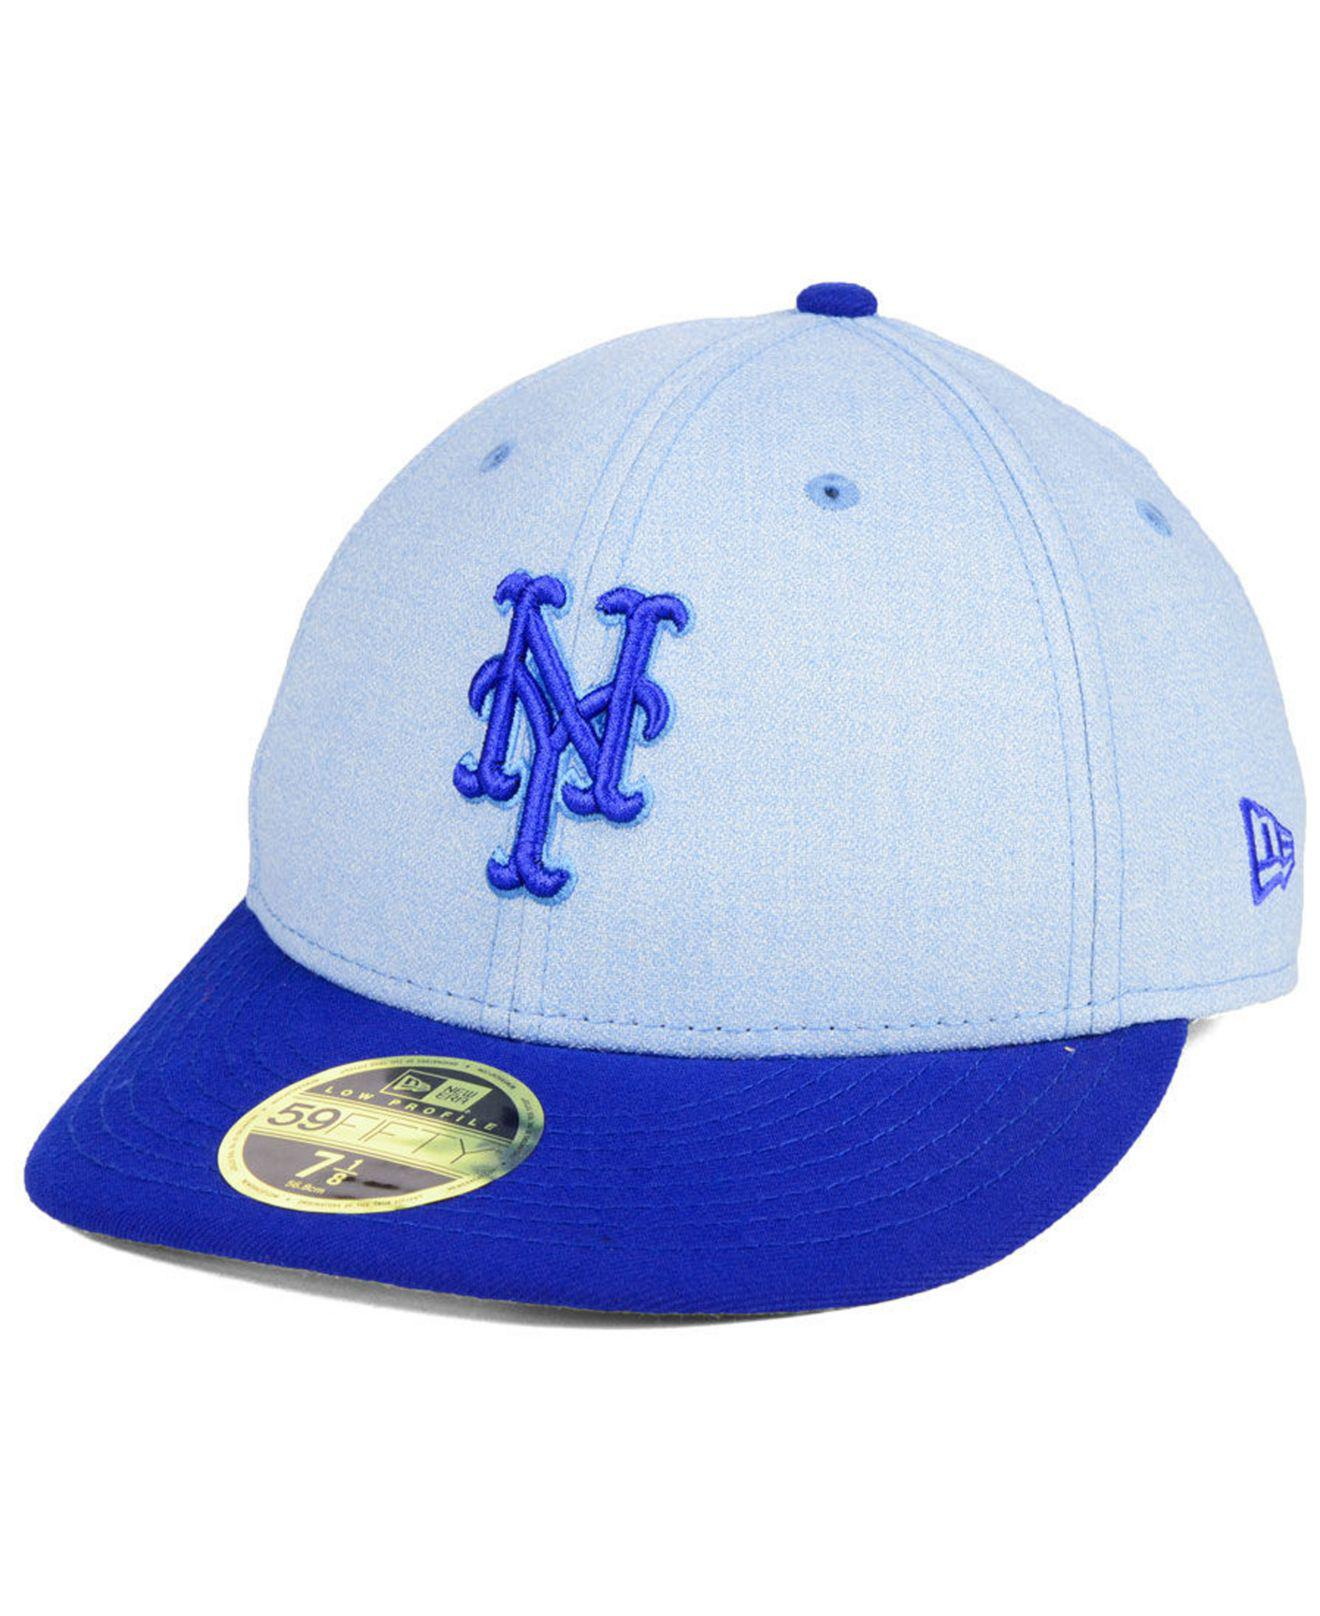 lowest price 66ae4 4d20d ... discount ktz. mens blue new york mets fathers day low profile 59fifty  cap 57dab 8c95a